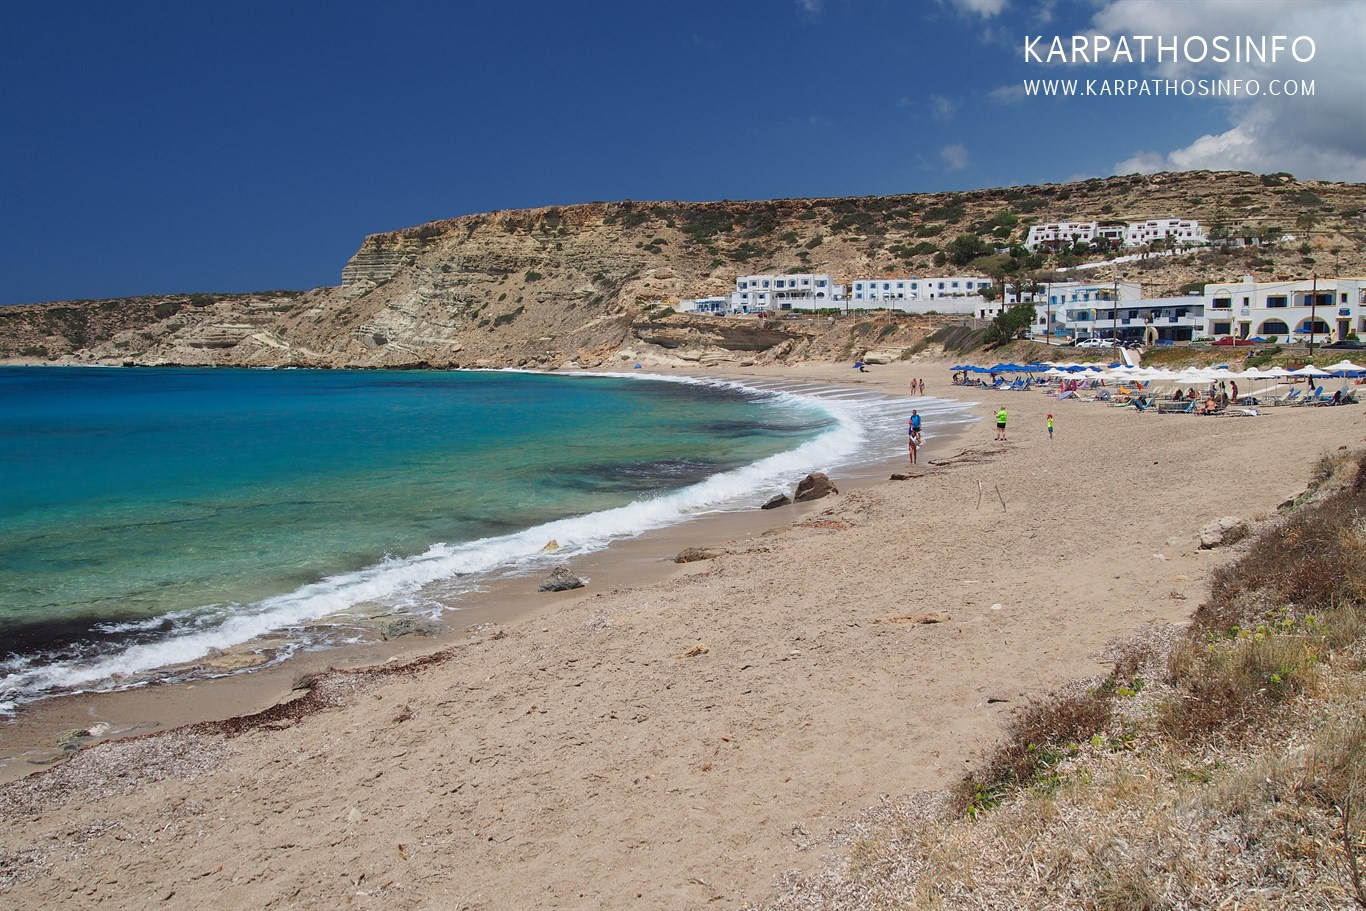 Lefkos beach north Karpathos